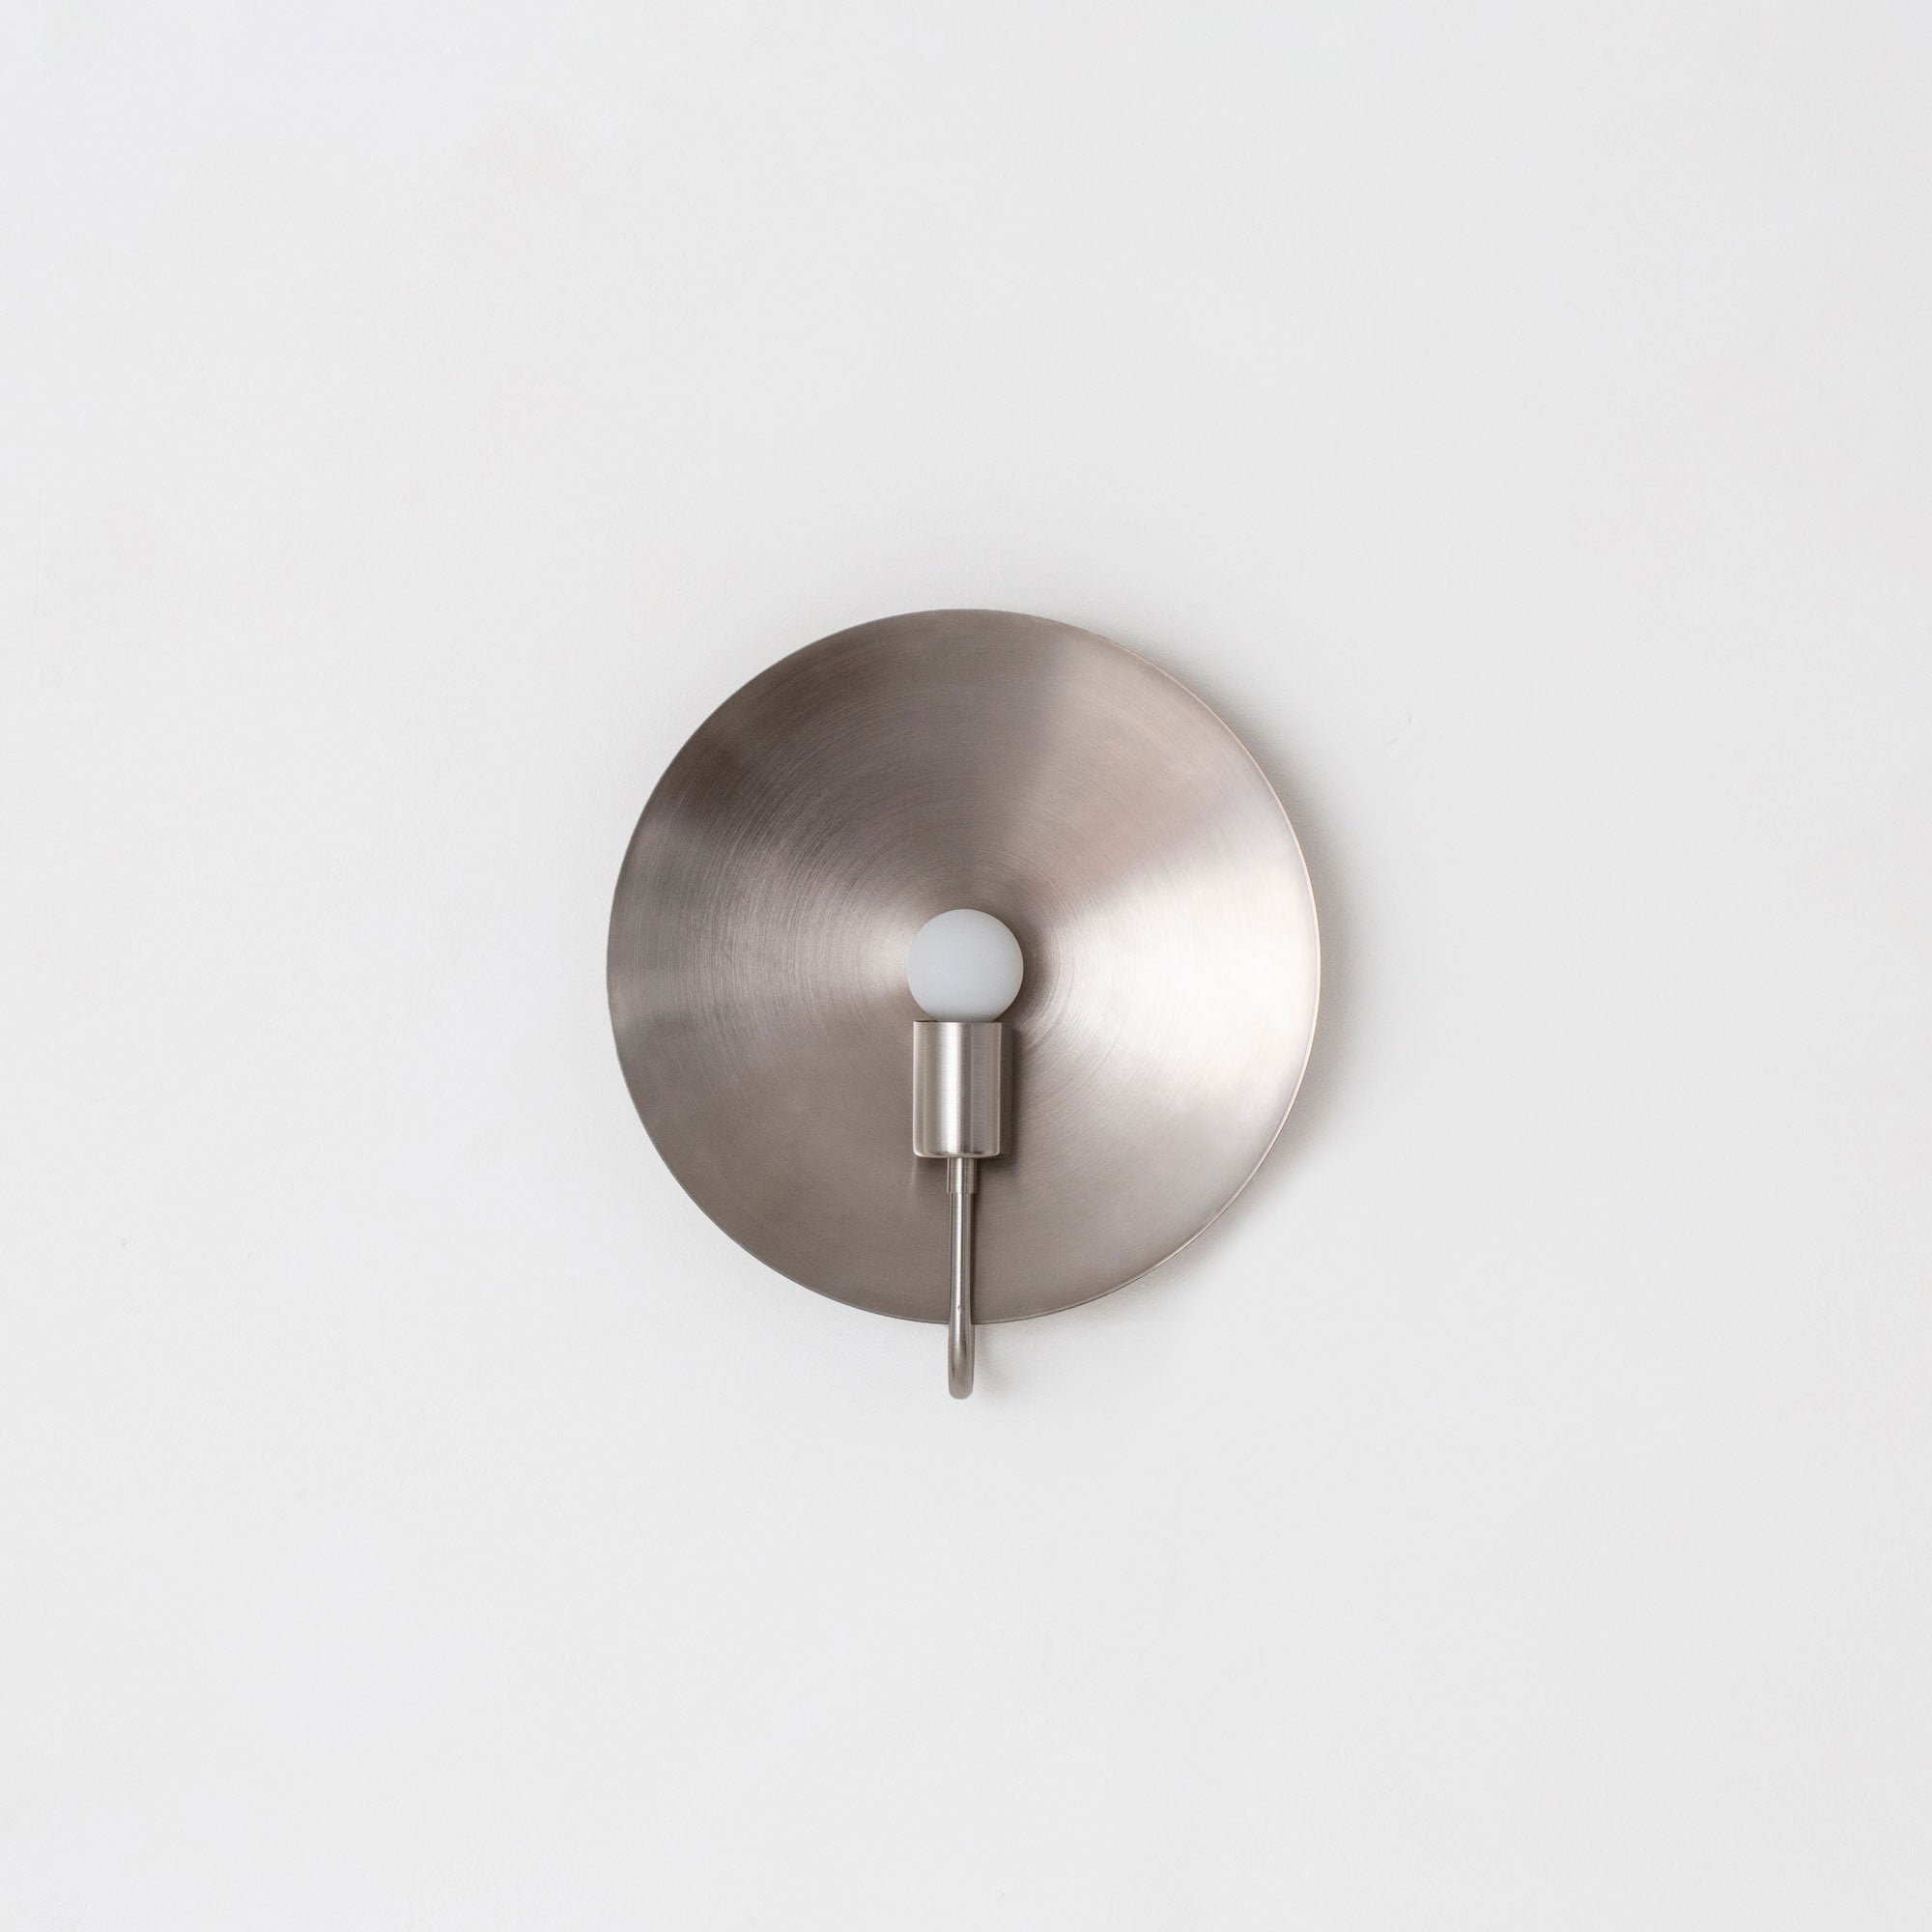 Helios ADA Sconce in Brushed Nickel - Lighting - Designer - Sconces – Shoppe Amber Interiors